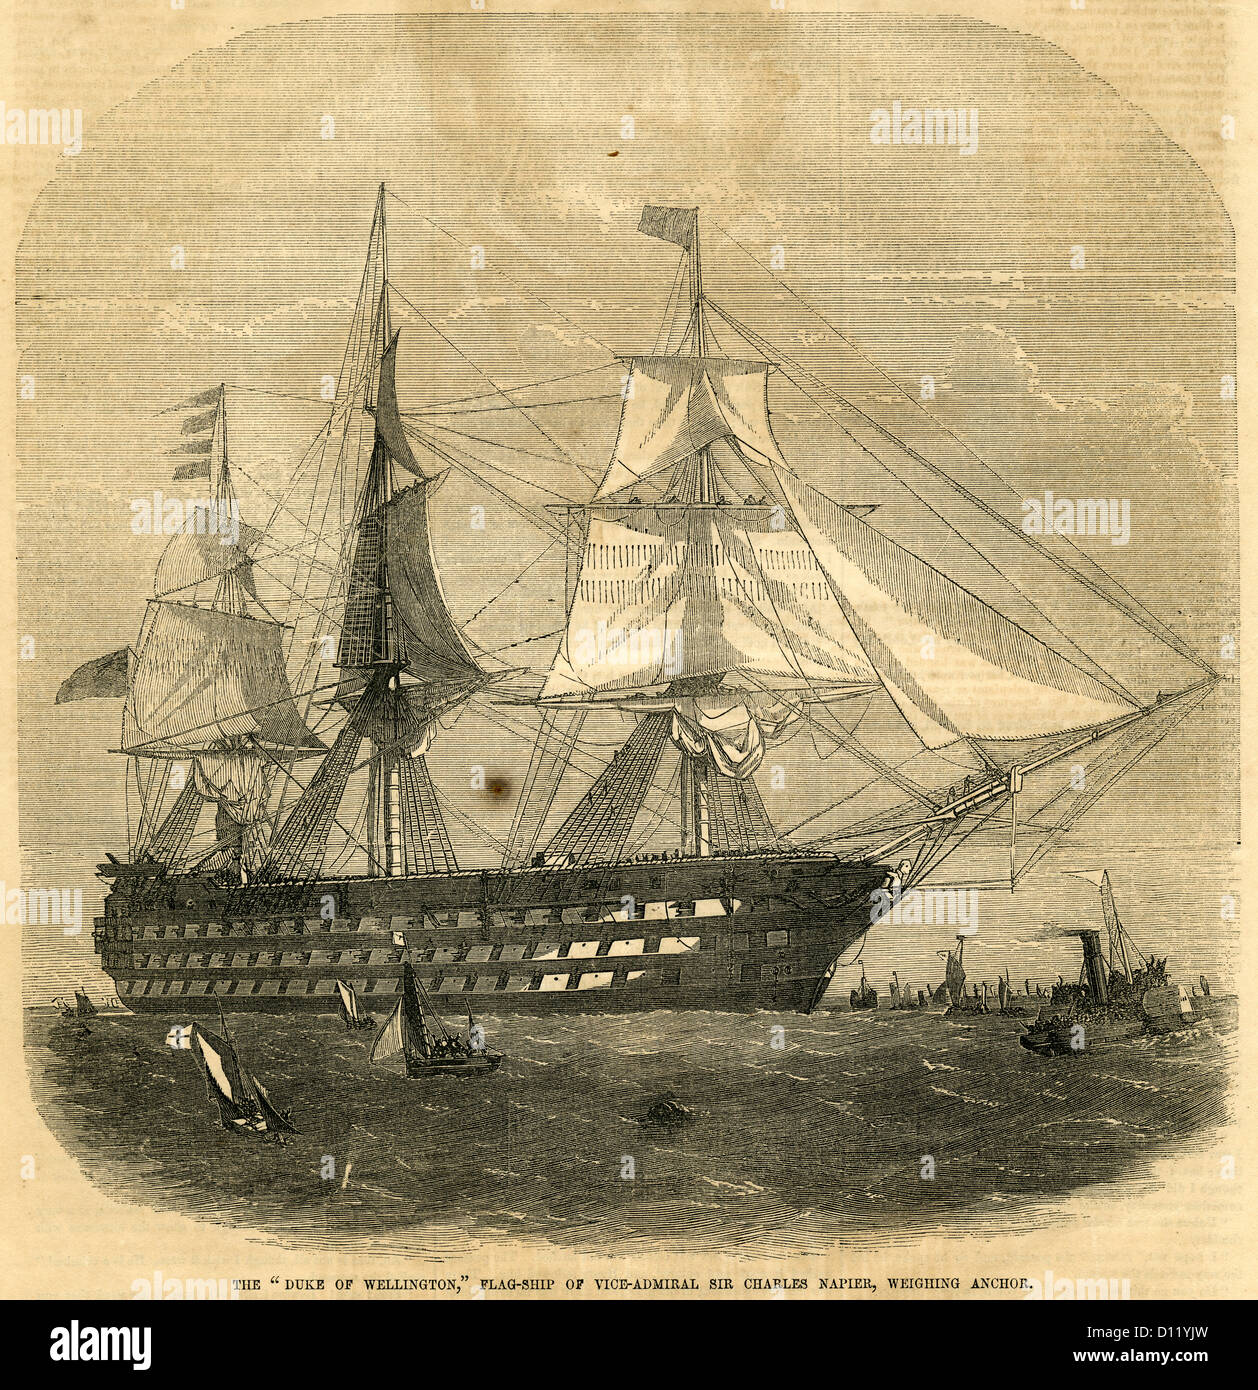 1854 engraving, The Duke of Wellington, Flag-ship of Vice-Admiral Sir Charles Napier, Weighing Anchor. - Stock Image